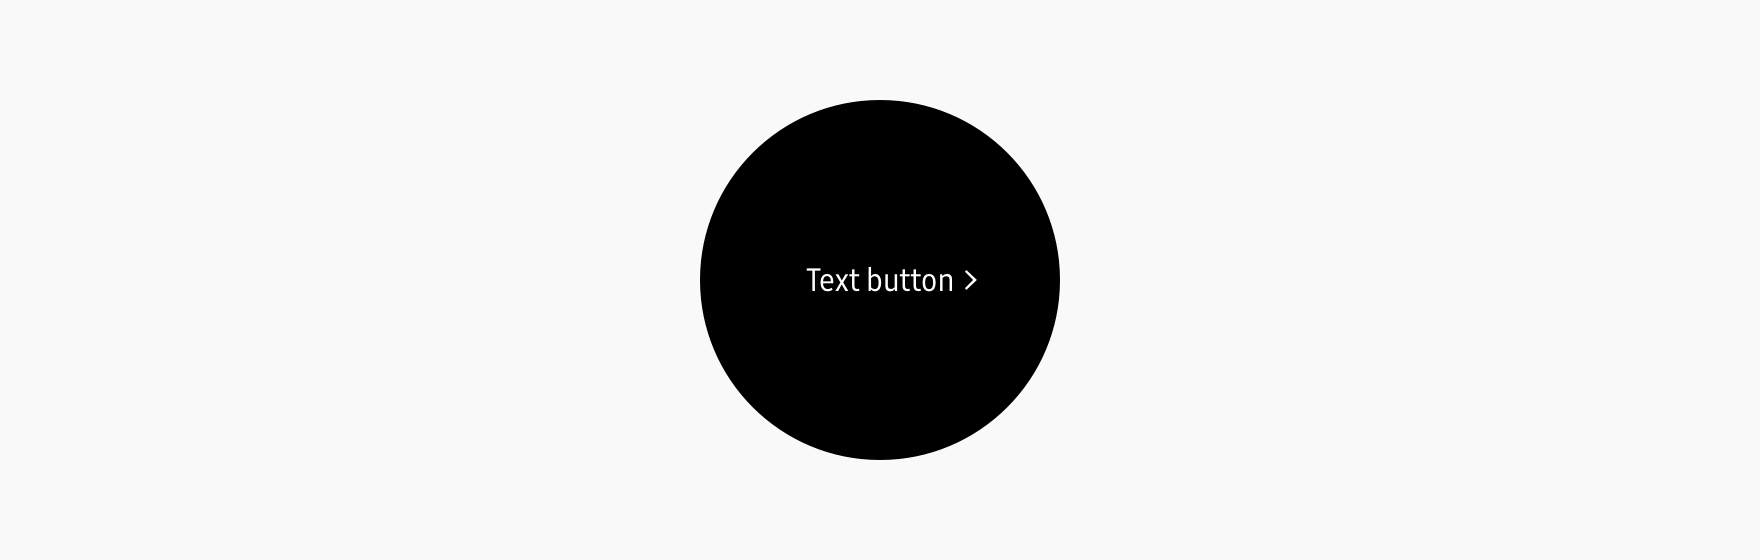 Present a text button with a visual cue (>) next to the text if the button causes a screen transition.